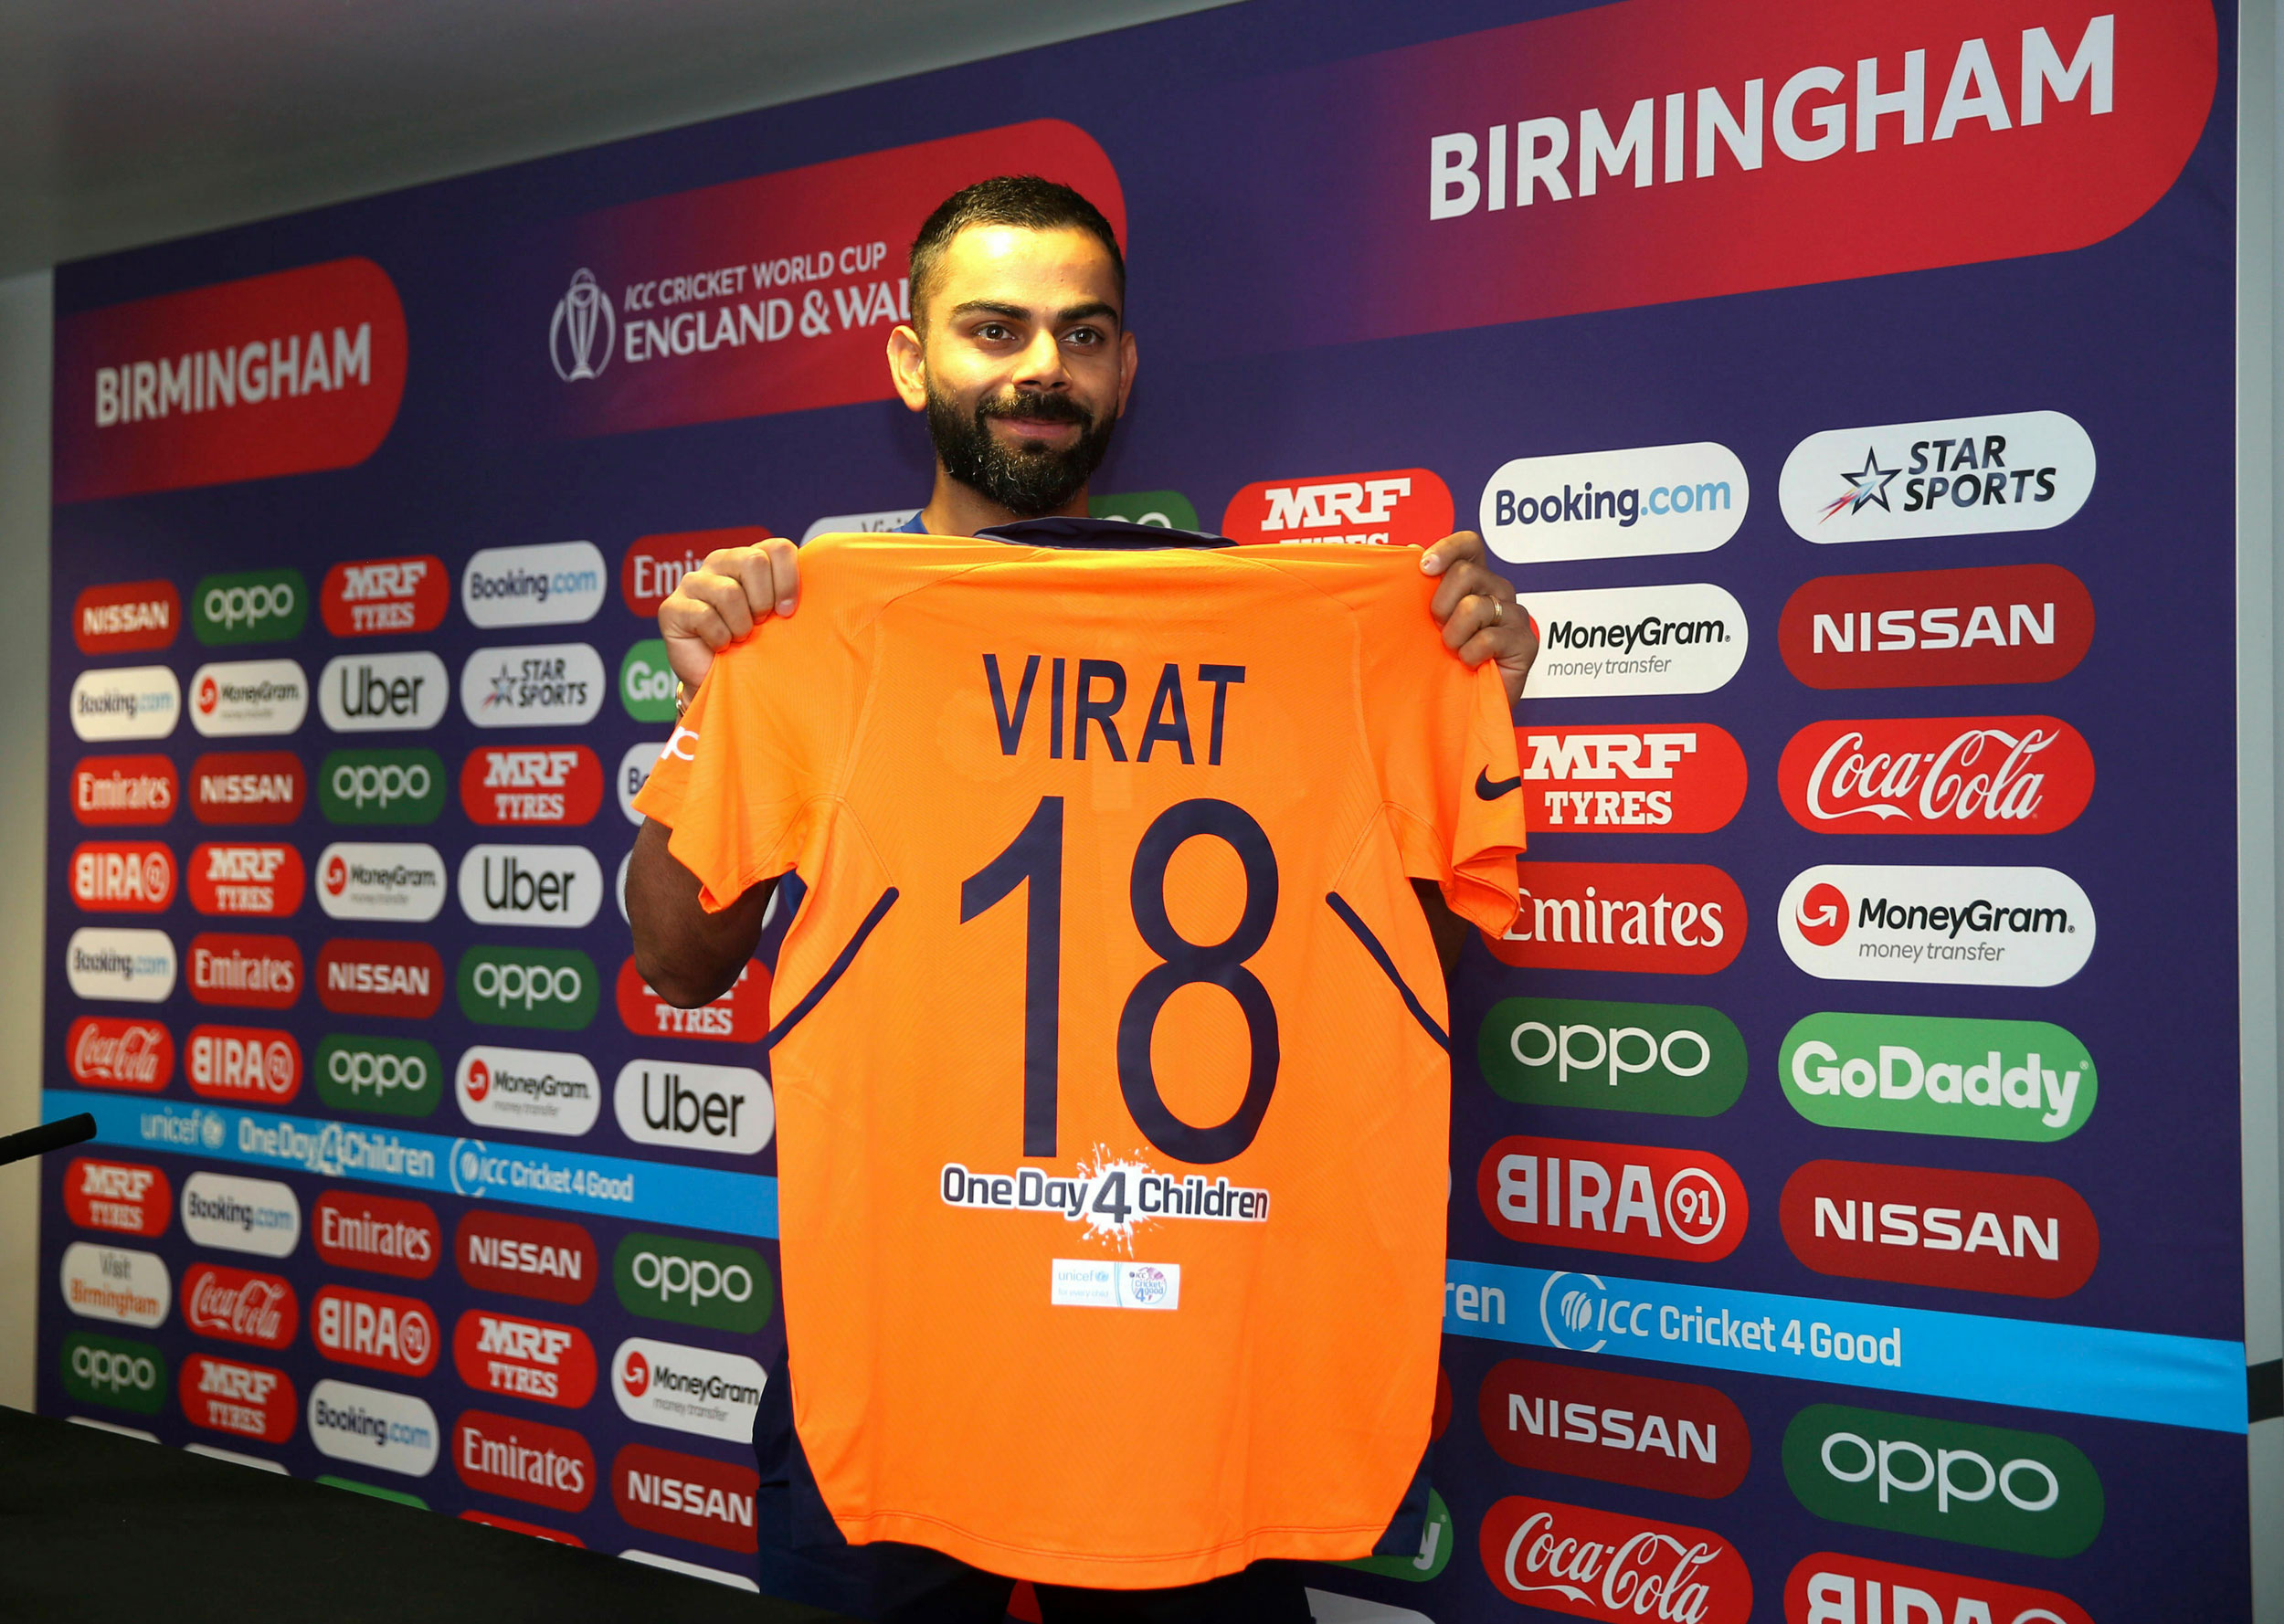 Virat Kohli holds up the new India jersey during a press conference at Edgbaston in Birmingham, on June 29, 2019. India will play in new a new team shirt Sunday to avoid a clash of colours when they play England in the Cricket World Cup.